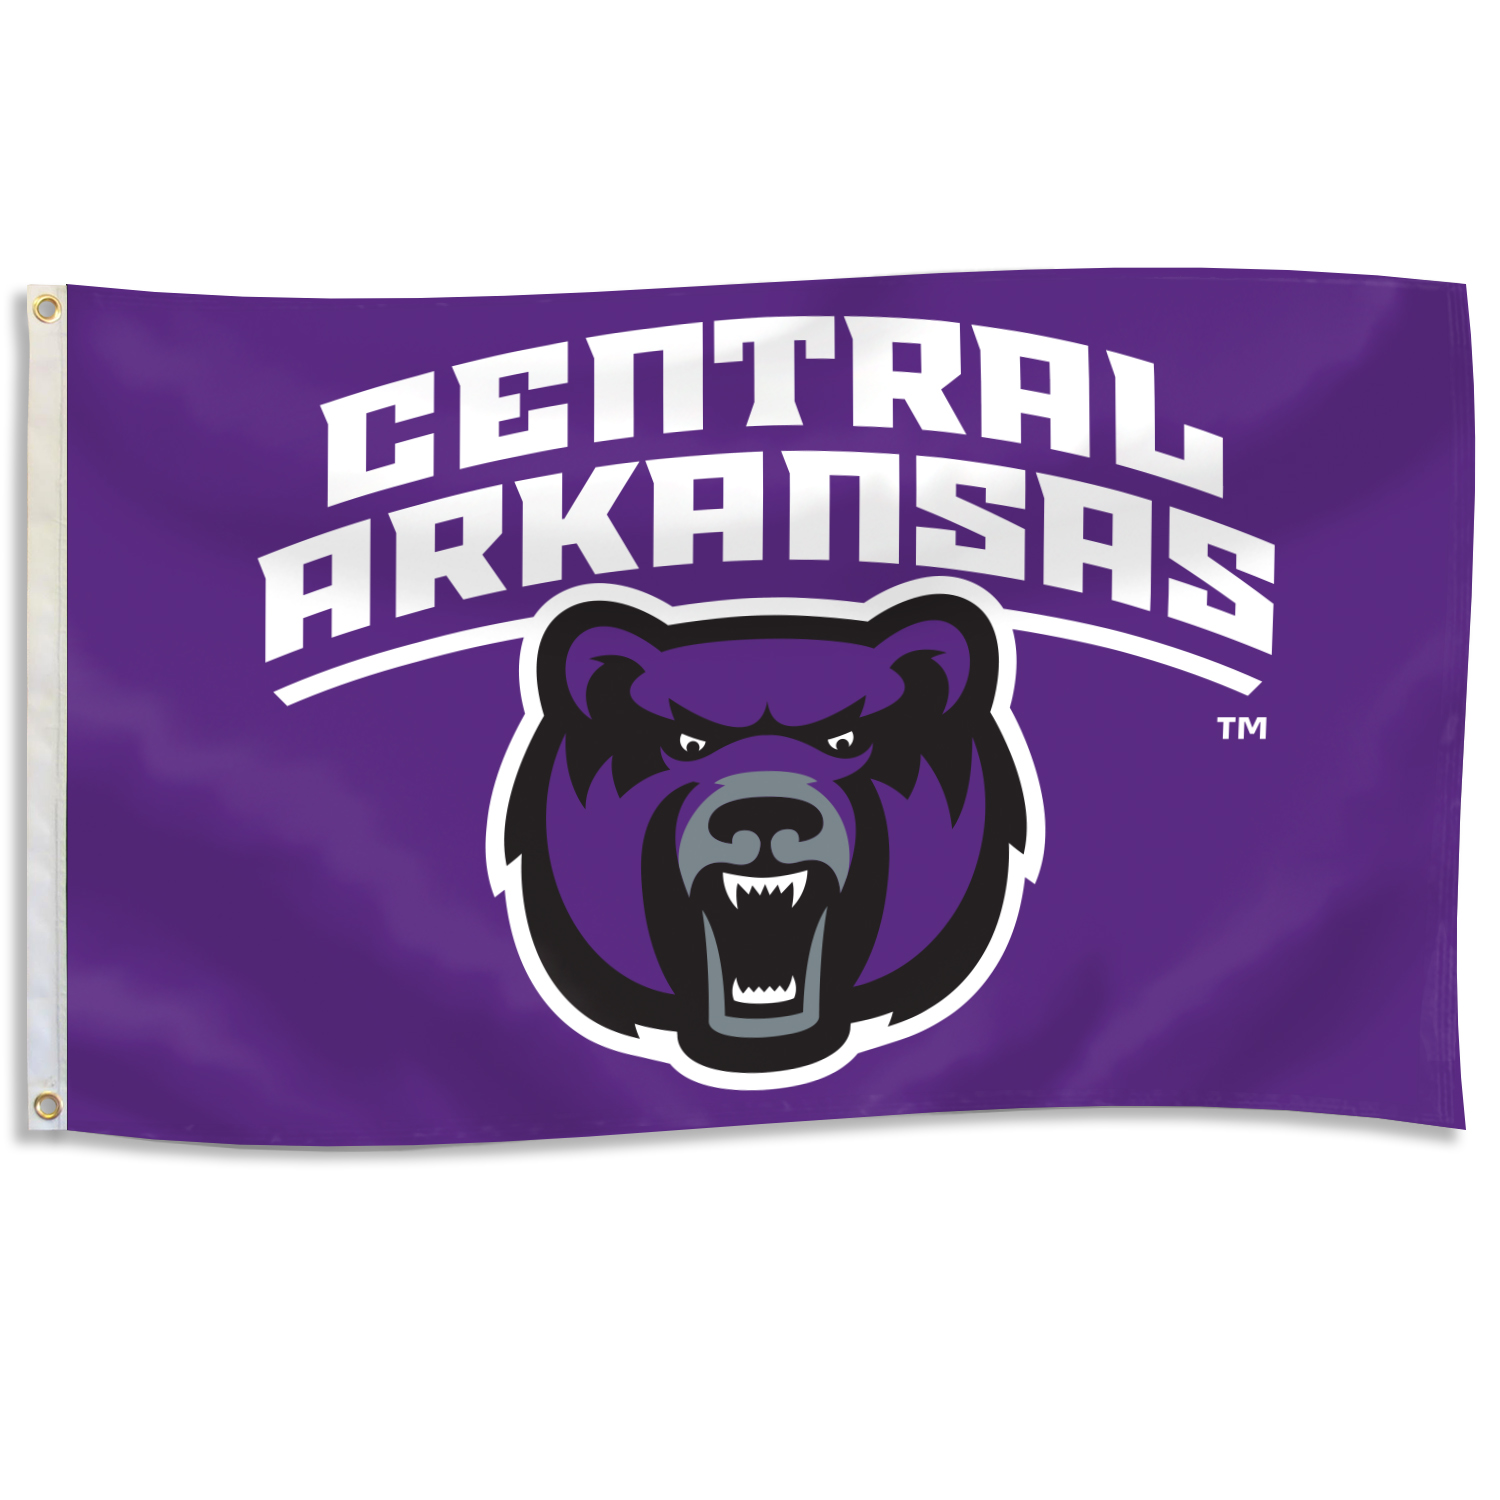 Central Arkansas DuraWave Flag